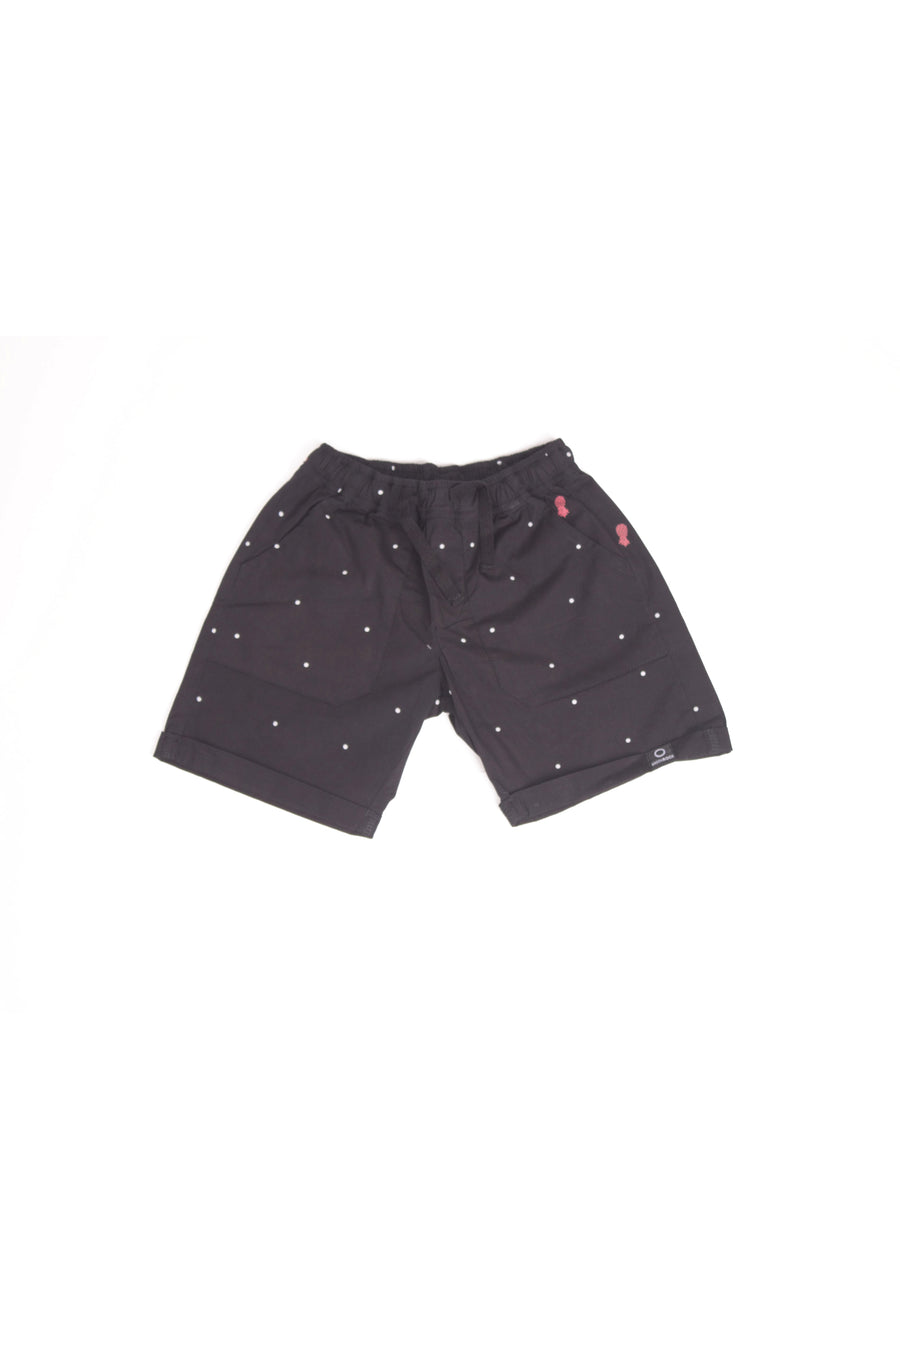 Short Kids Pineapple 4 Black - Greenrock Indonesia